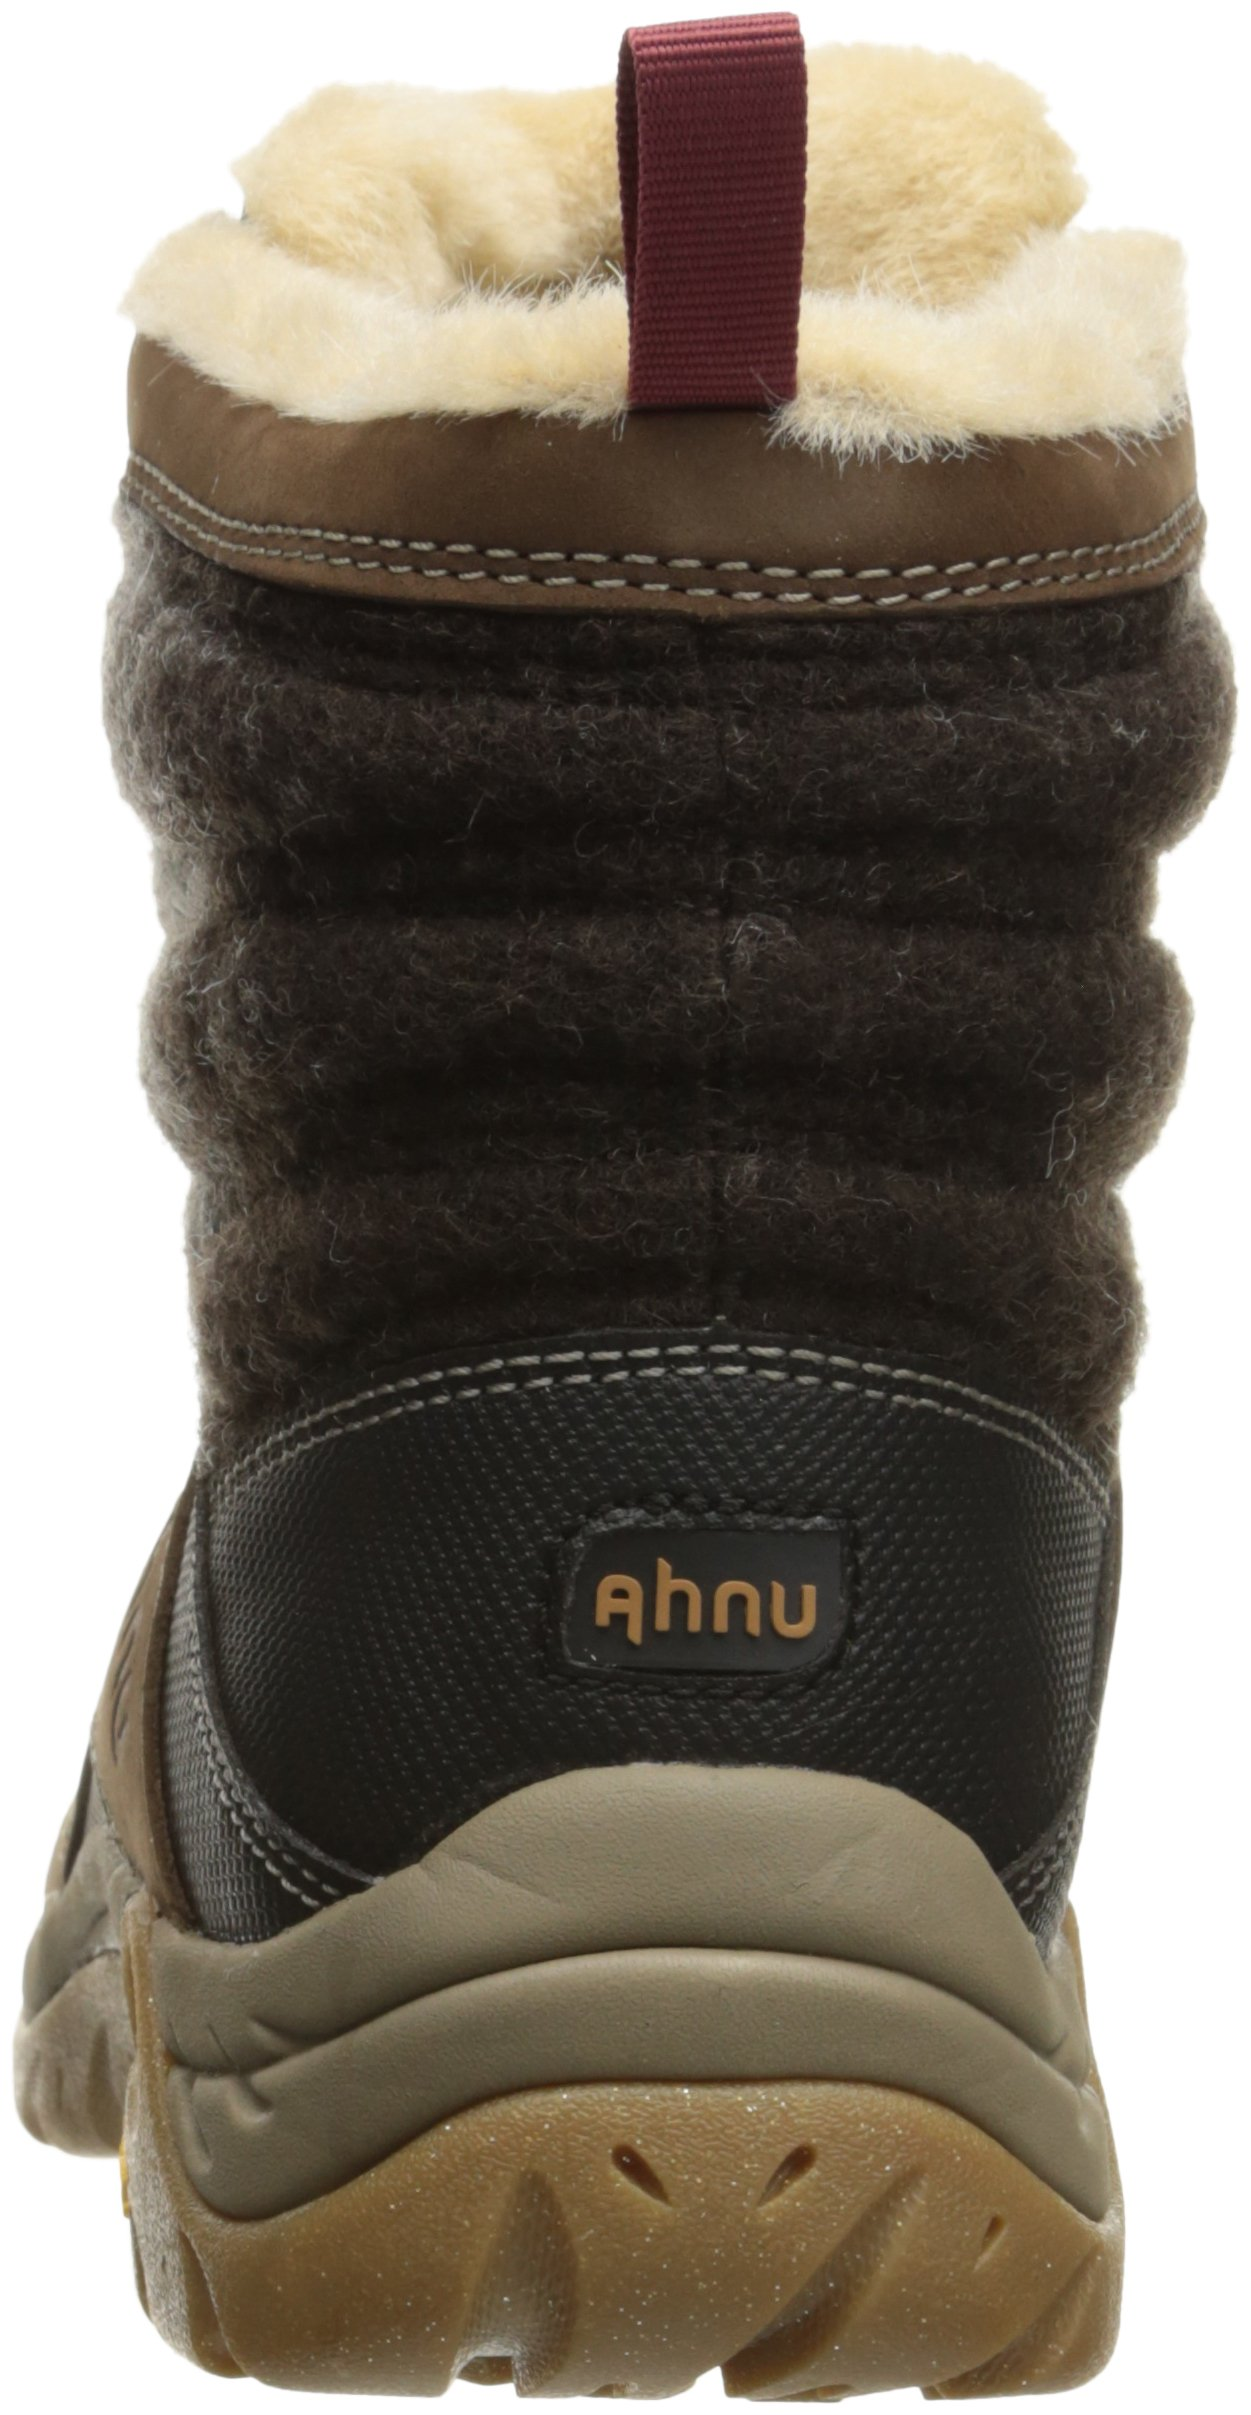 Ahnu Women's Montara Waterproof Boot,Corduroy,9 M US by Ahnu (Image #2)